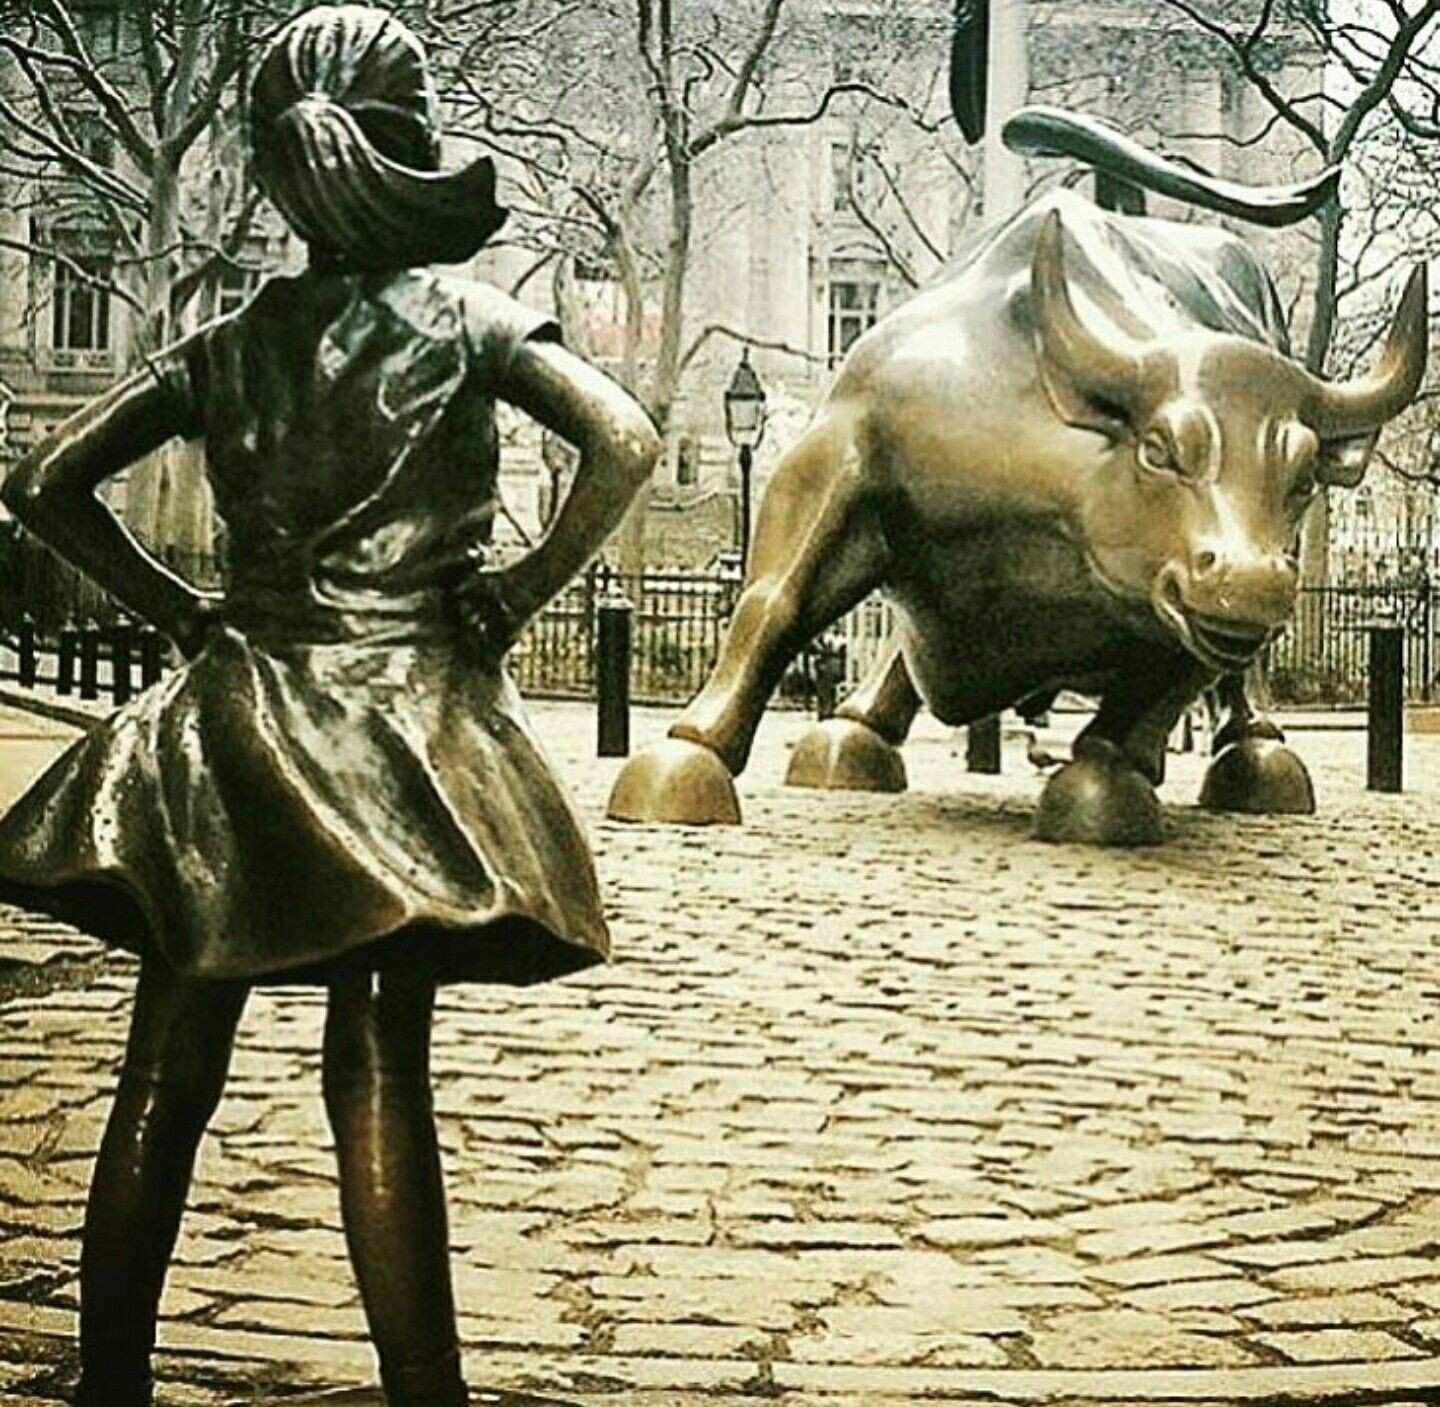 Fearless girl statue wall Street charging bull empowered strong